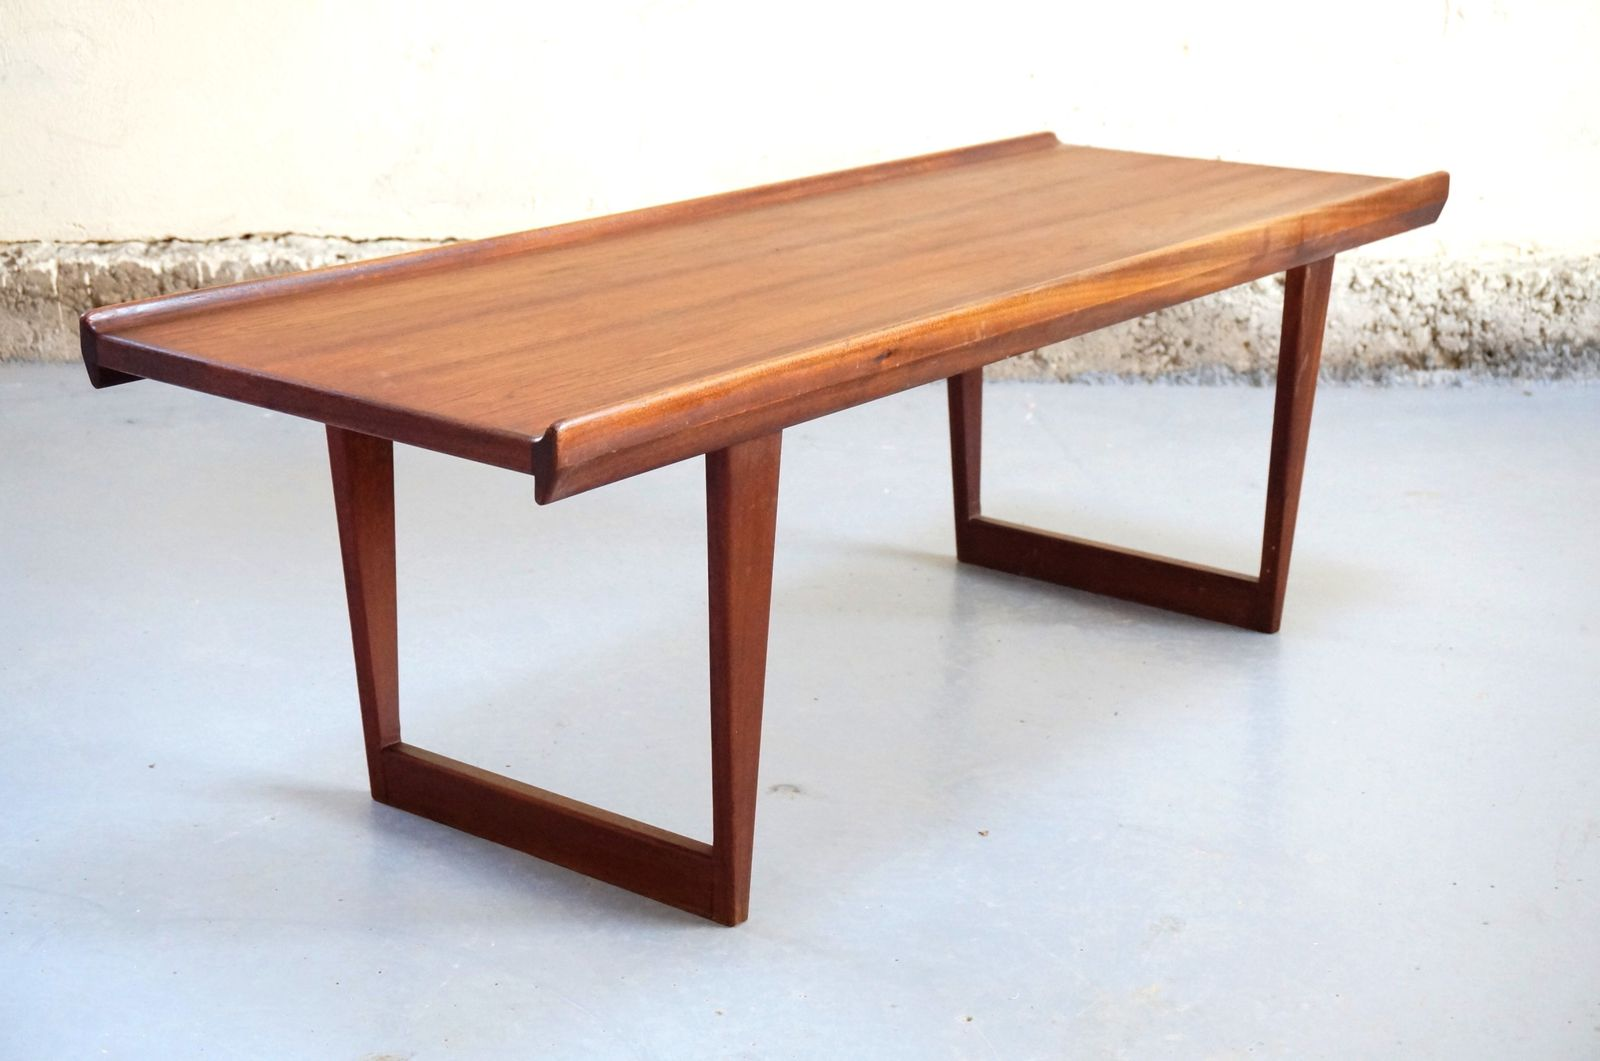 Vendu table basse scandinave de salon ann es 50 60 teck vintage danois dani - Table de salon style scandinave ...